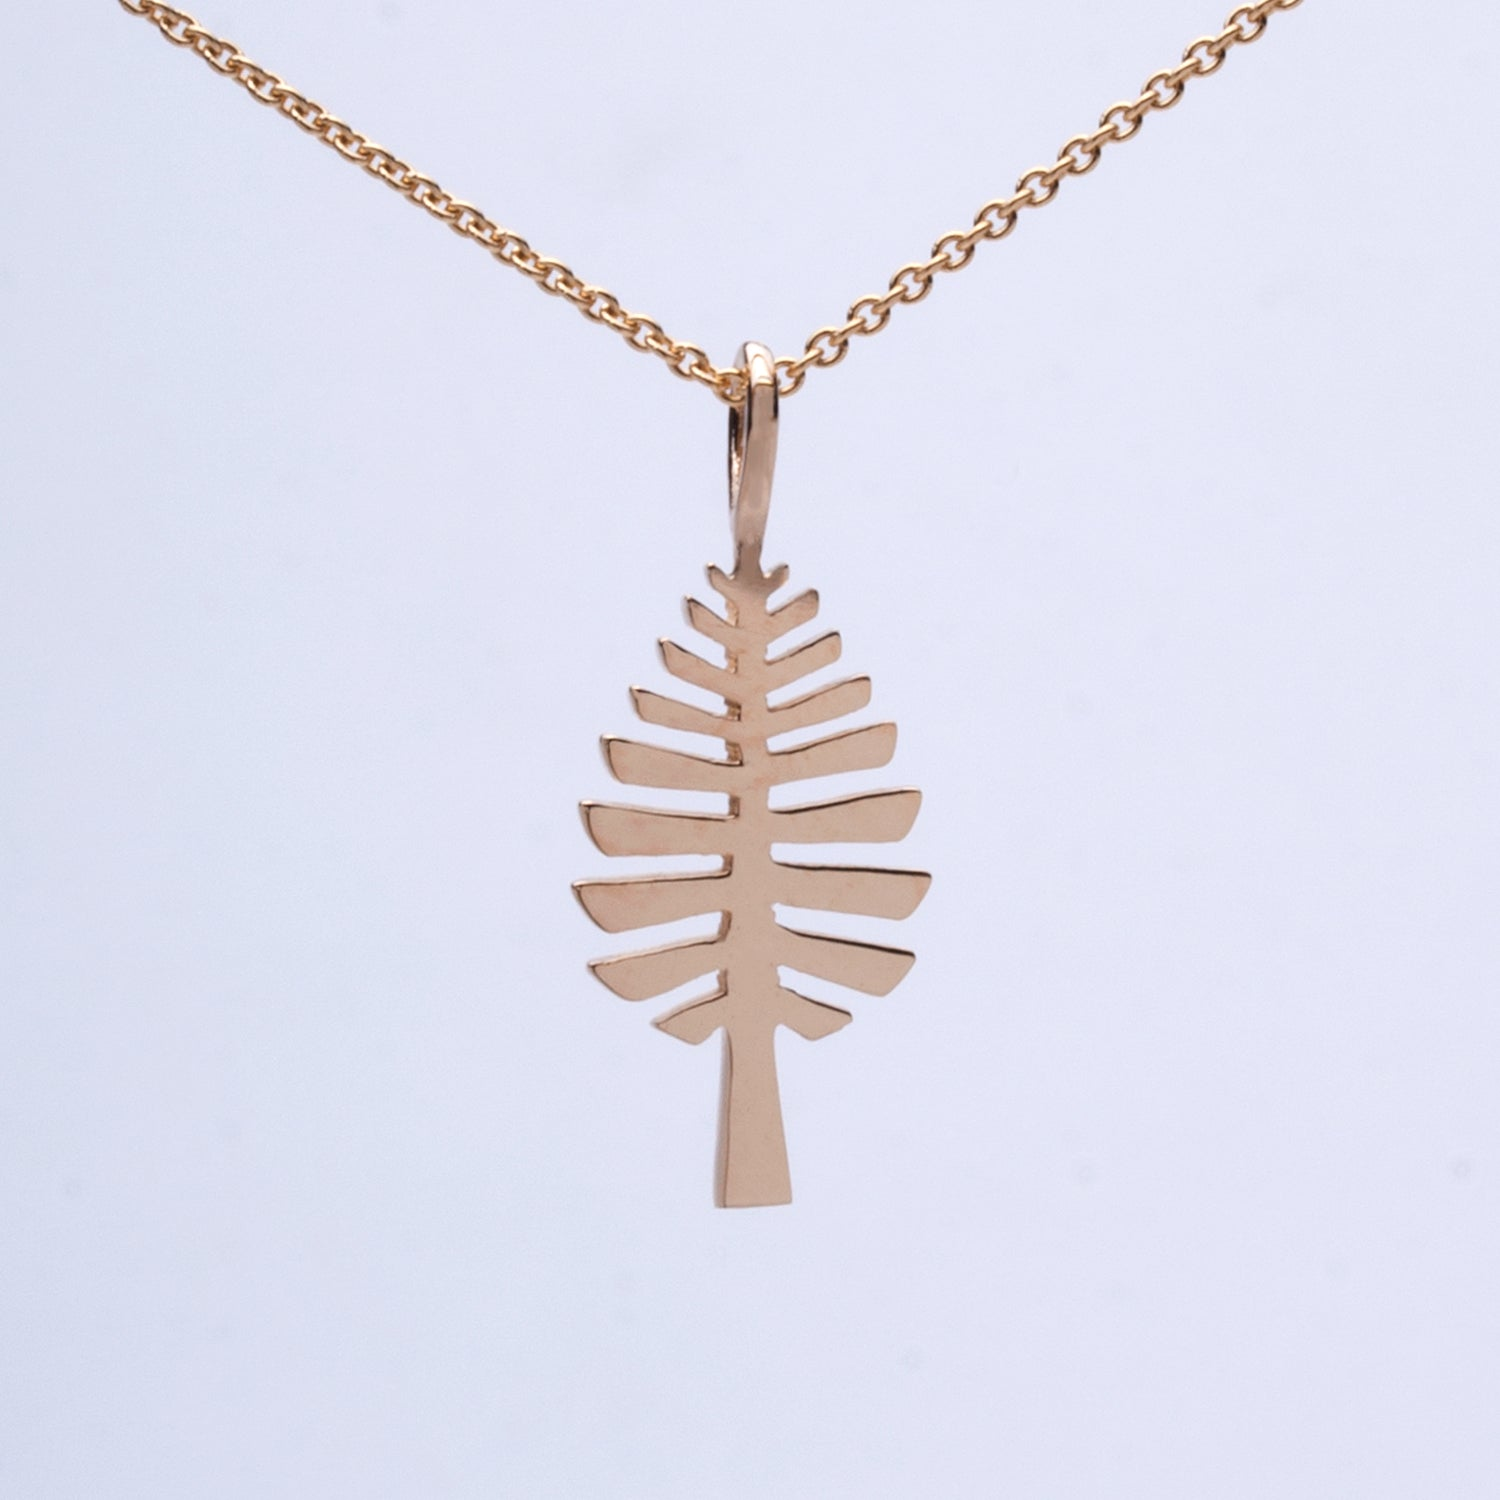 """D Pine"" Pendant (Available in Sterling Silver, 14ky & w gold; others made to order). Chains sold separately."